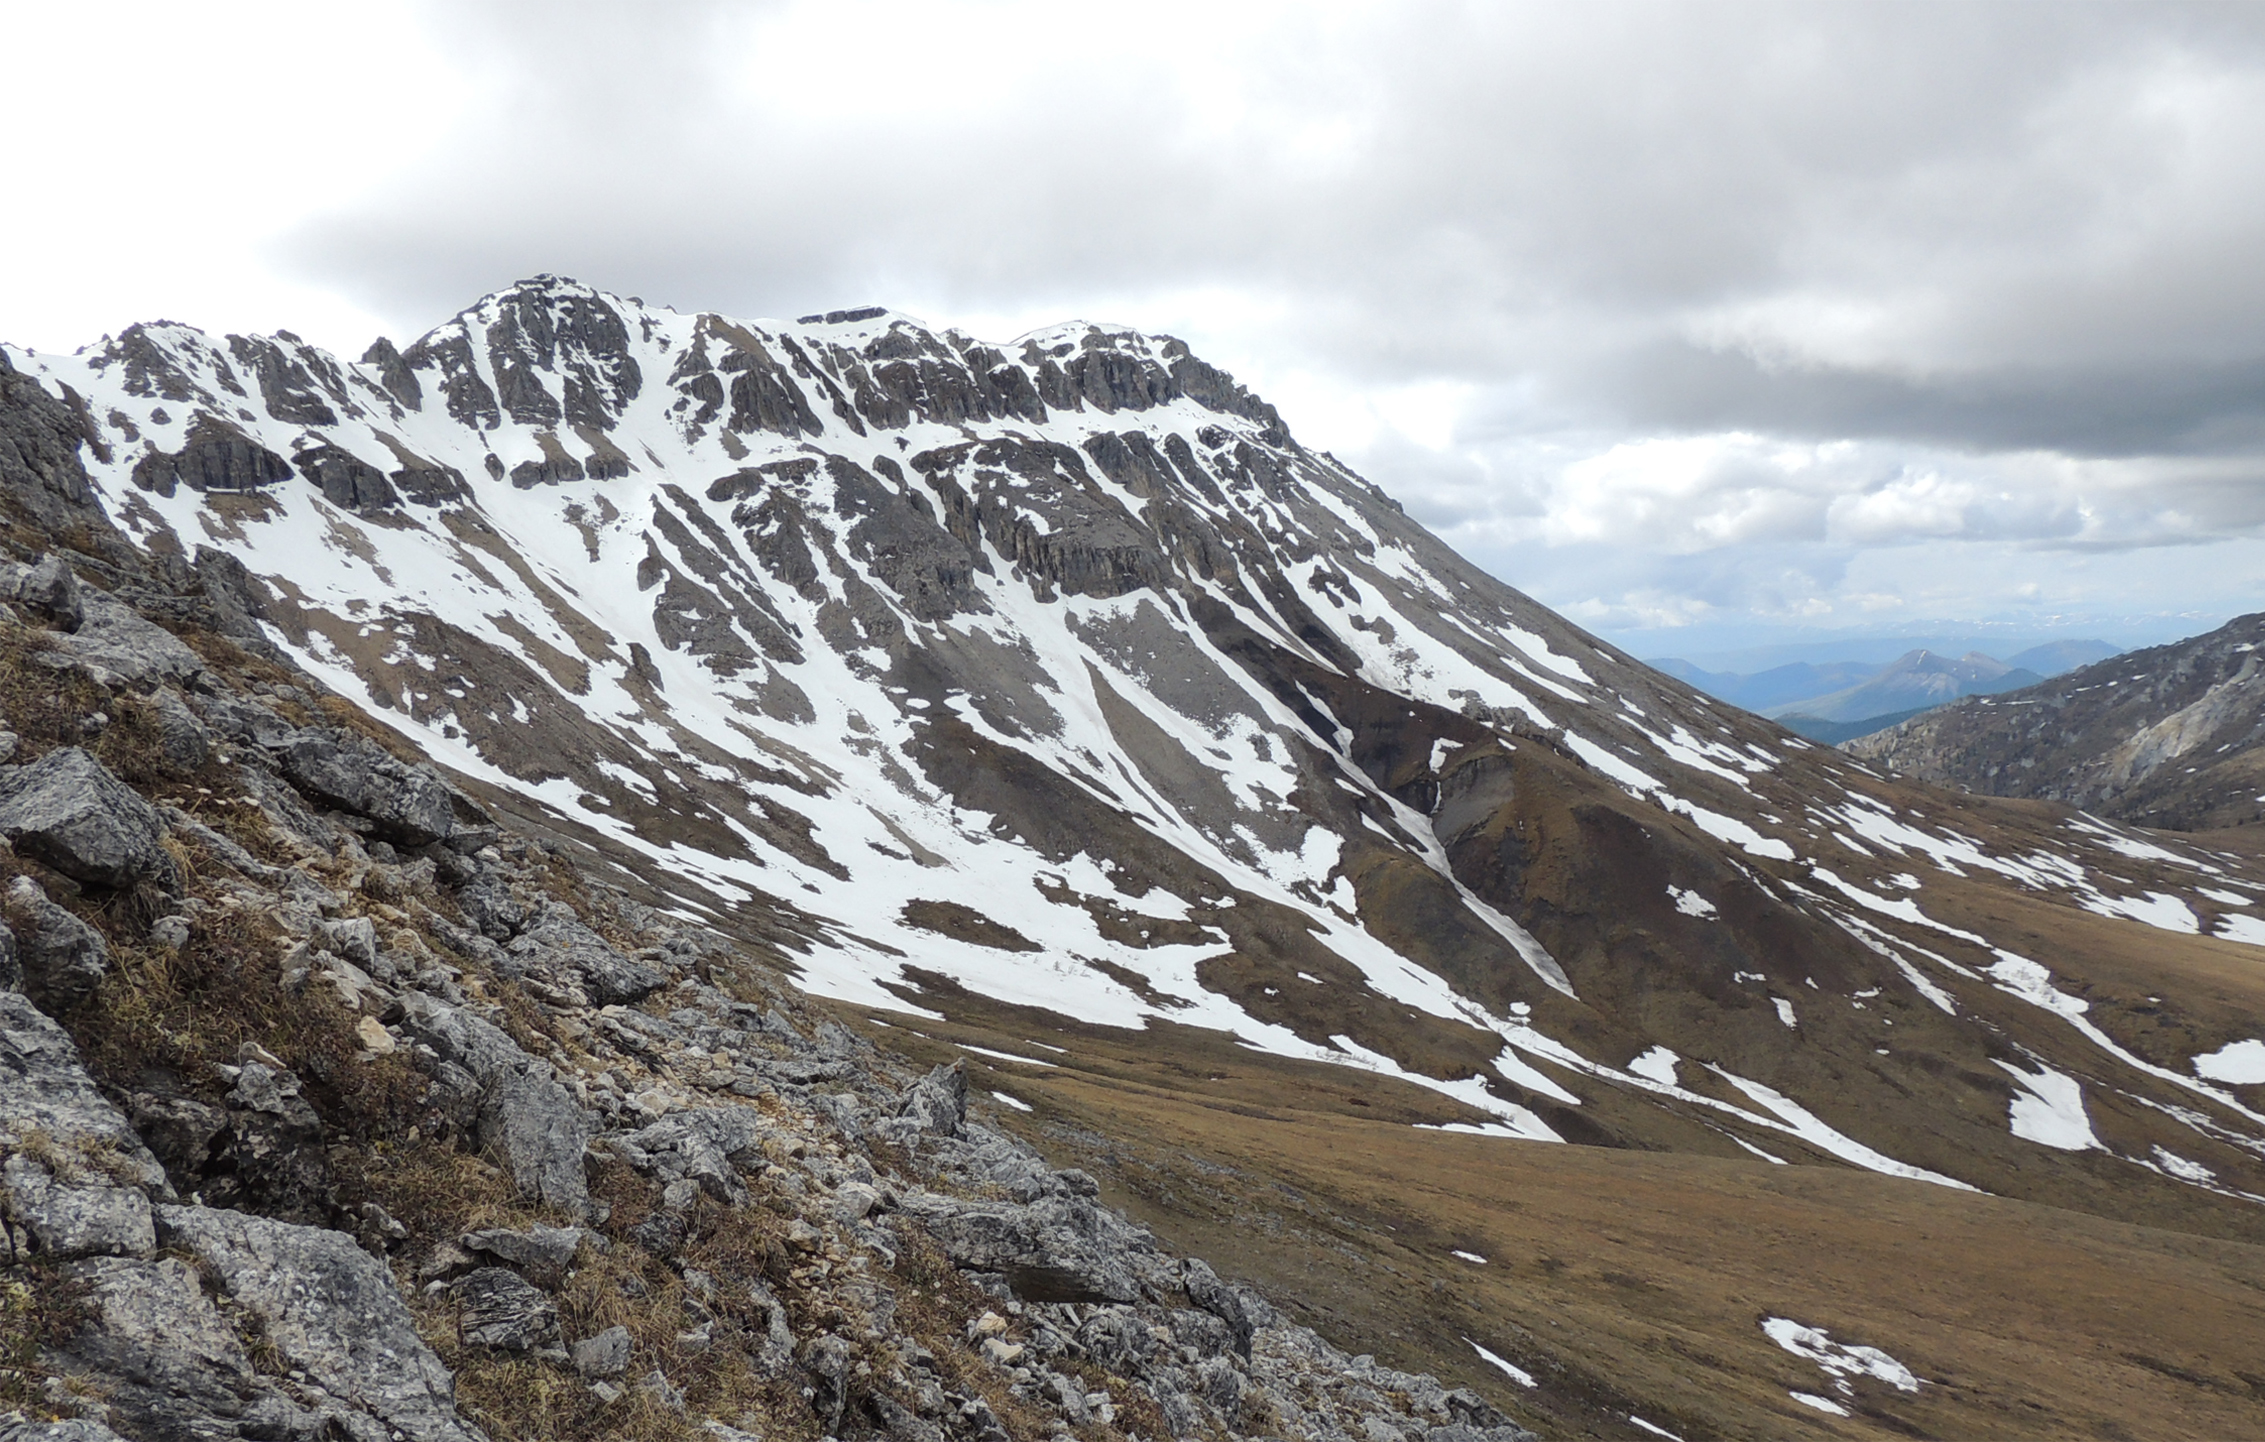 View of Mount Slipper looking towards the layers of rock that contain biomineralized fossils. Image credit: Phoebe A. Cohen